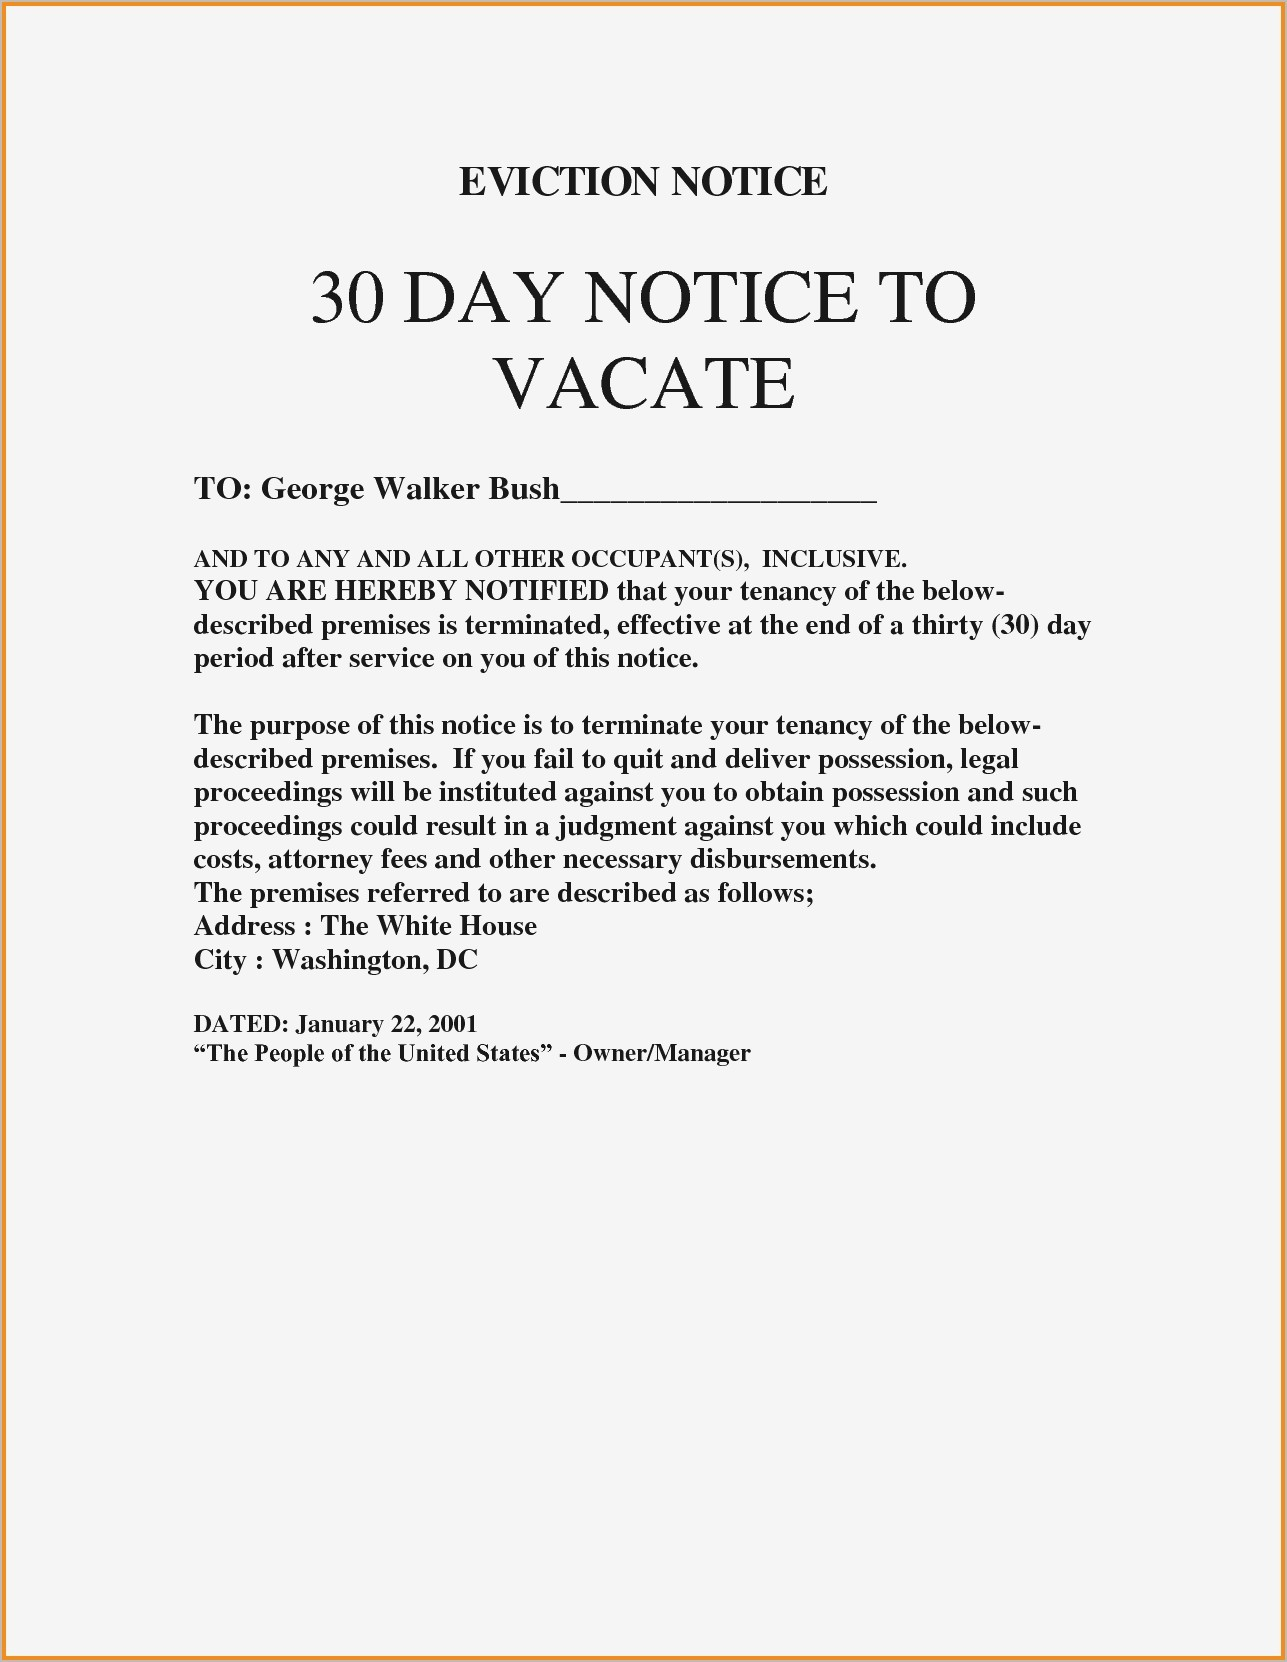 Eviction Notice Letter Template - Eviction Notice Template Nc